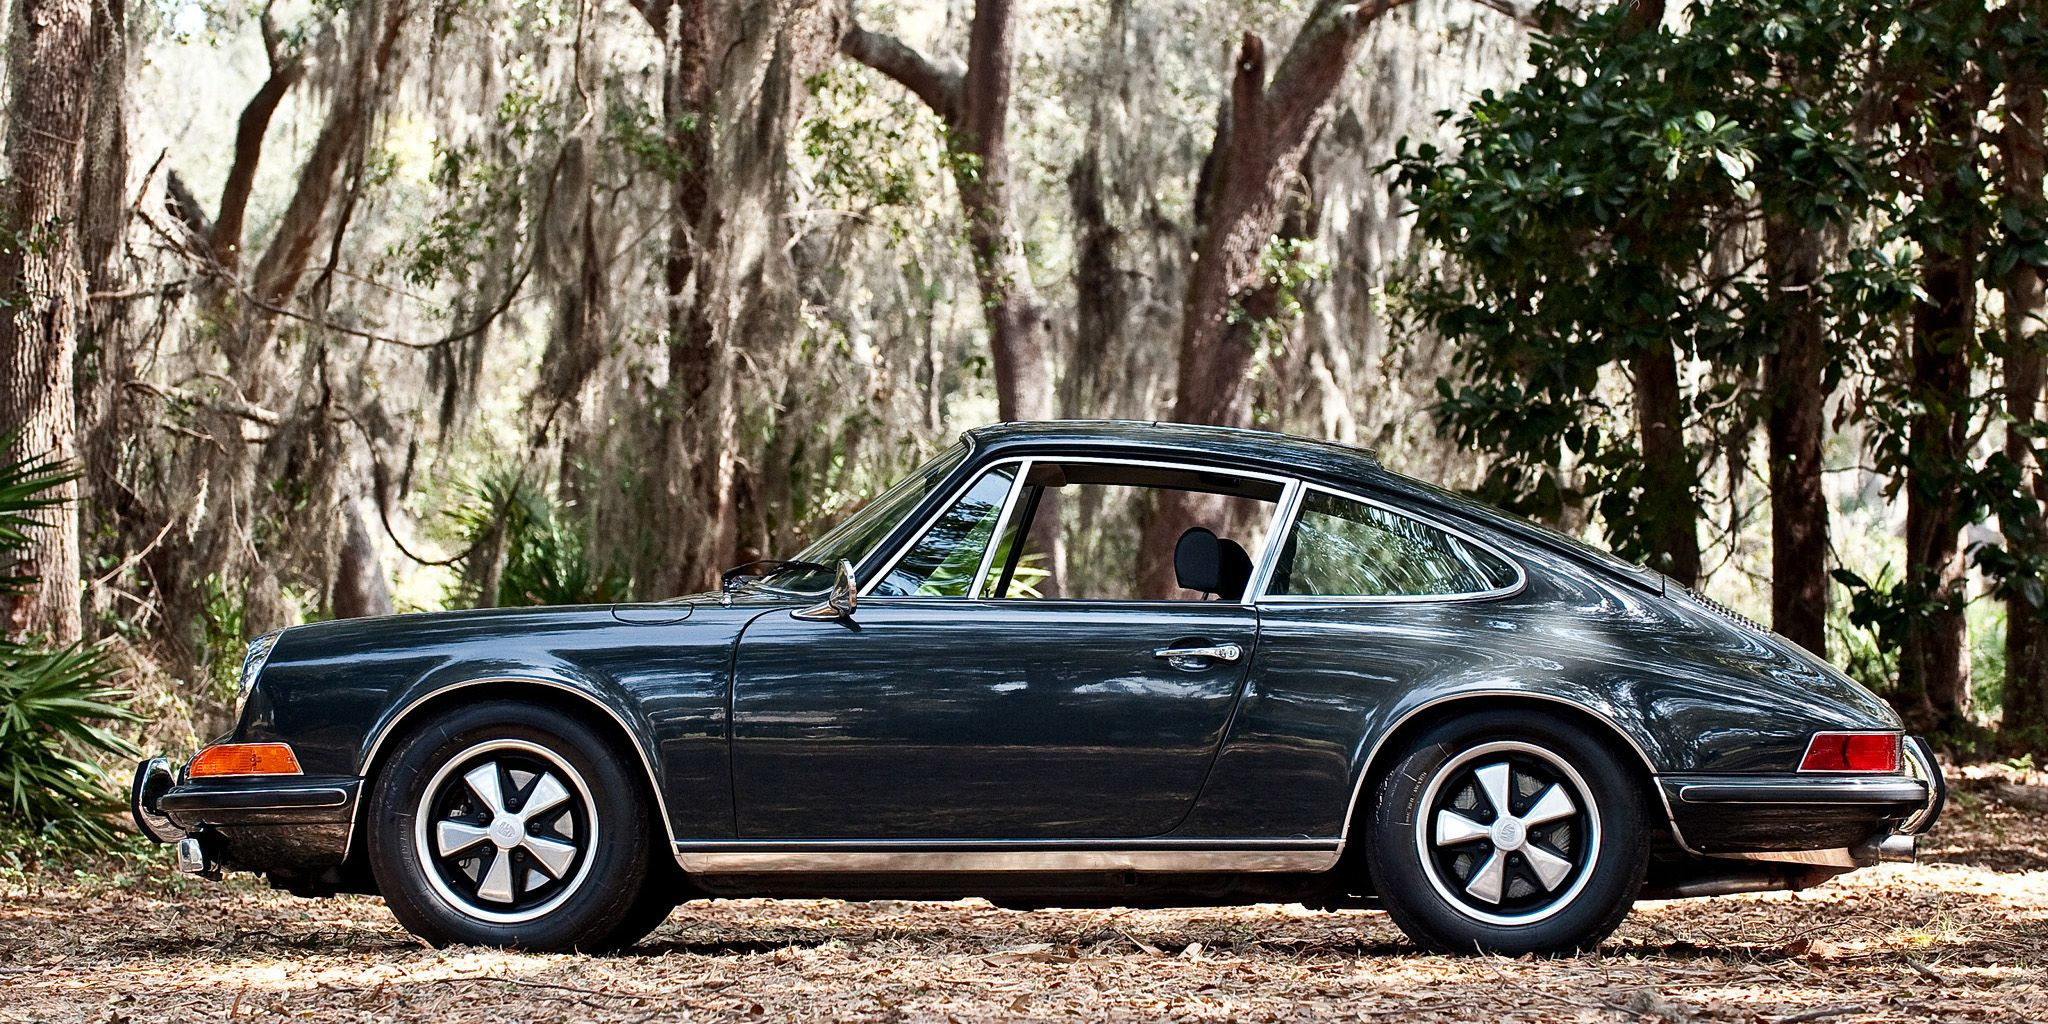 Porsche 911 History 40 Facts About The Legendary 1973 912 Coupe Type Of Engine